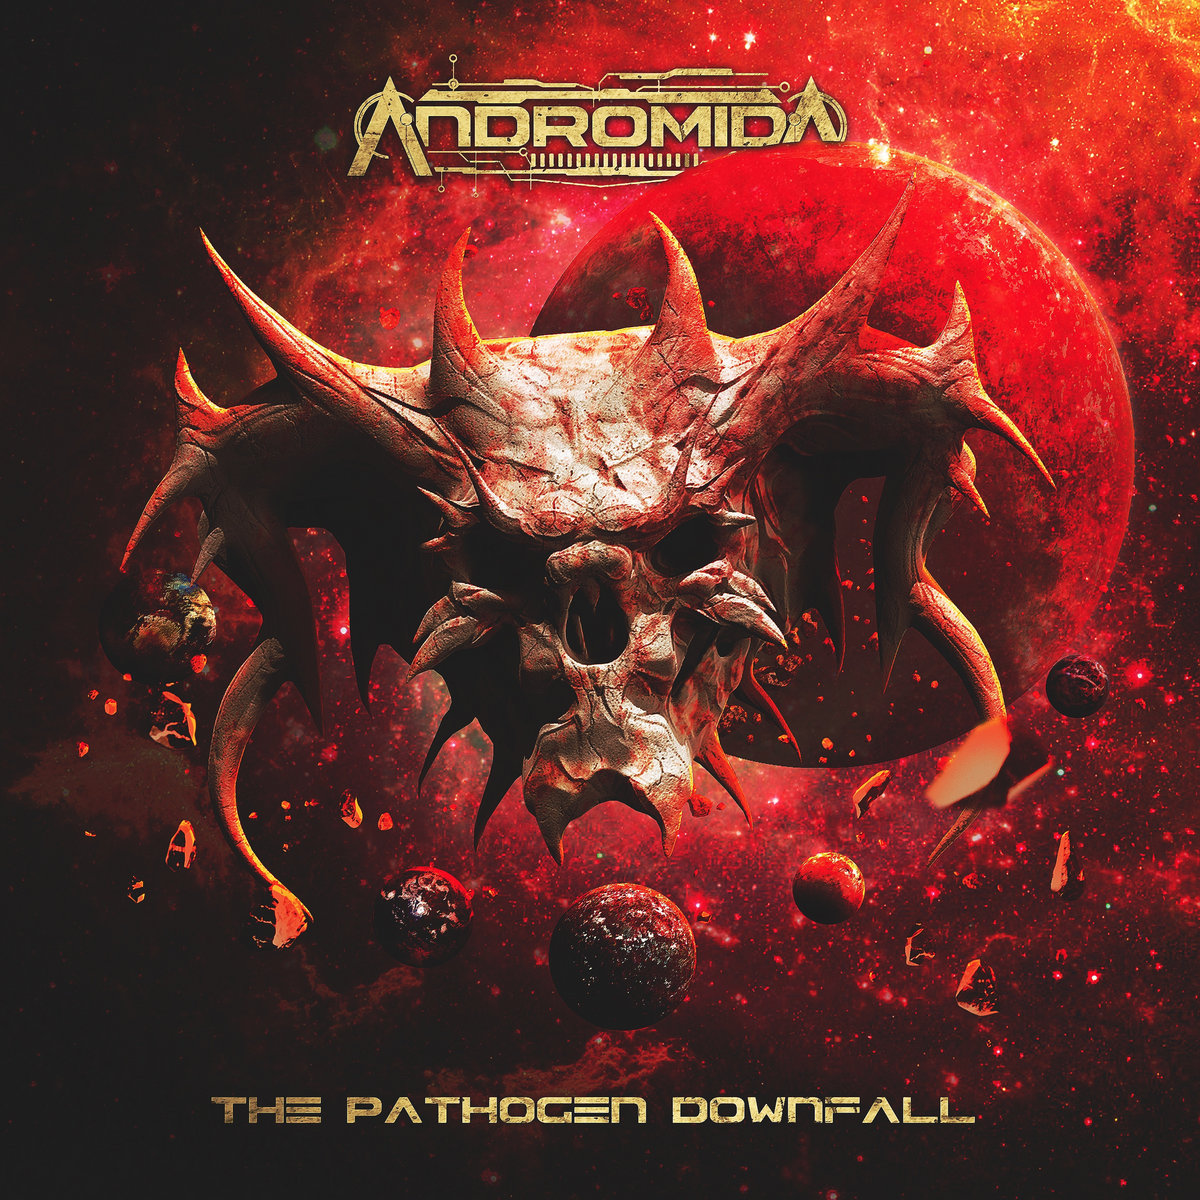 The Pathogen Downfall by Andromida